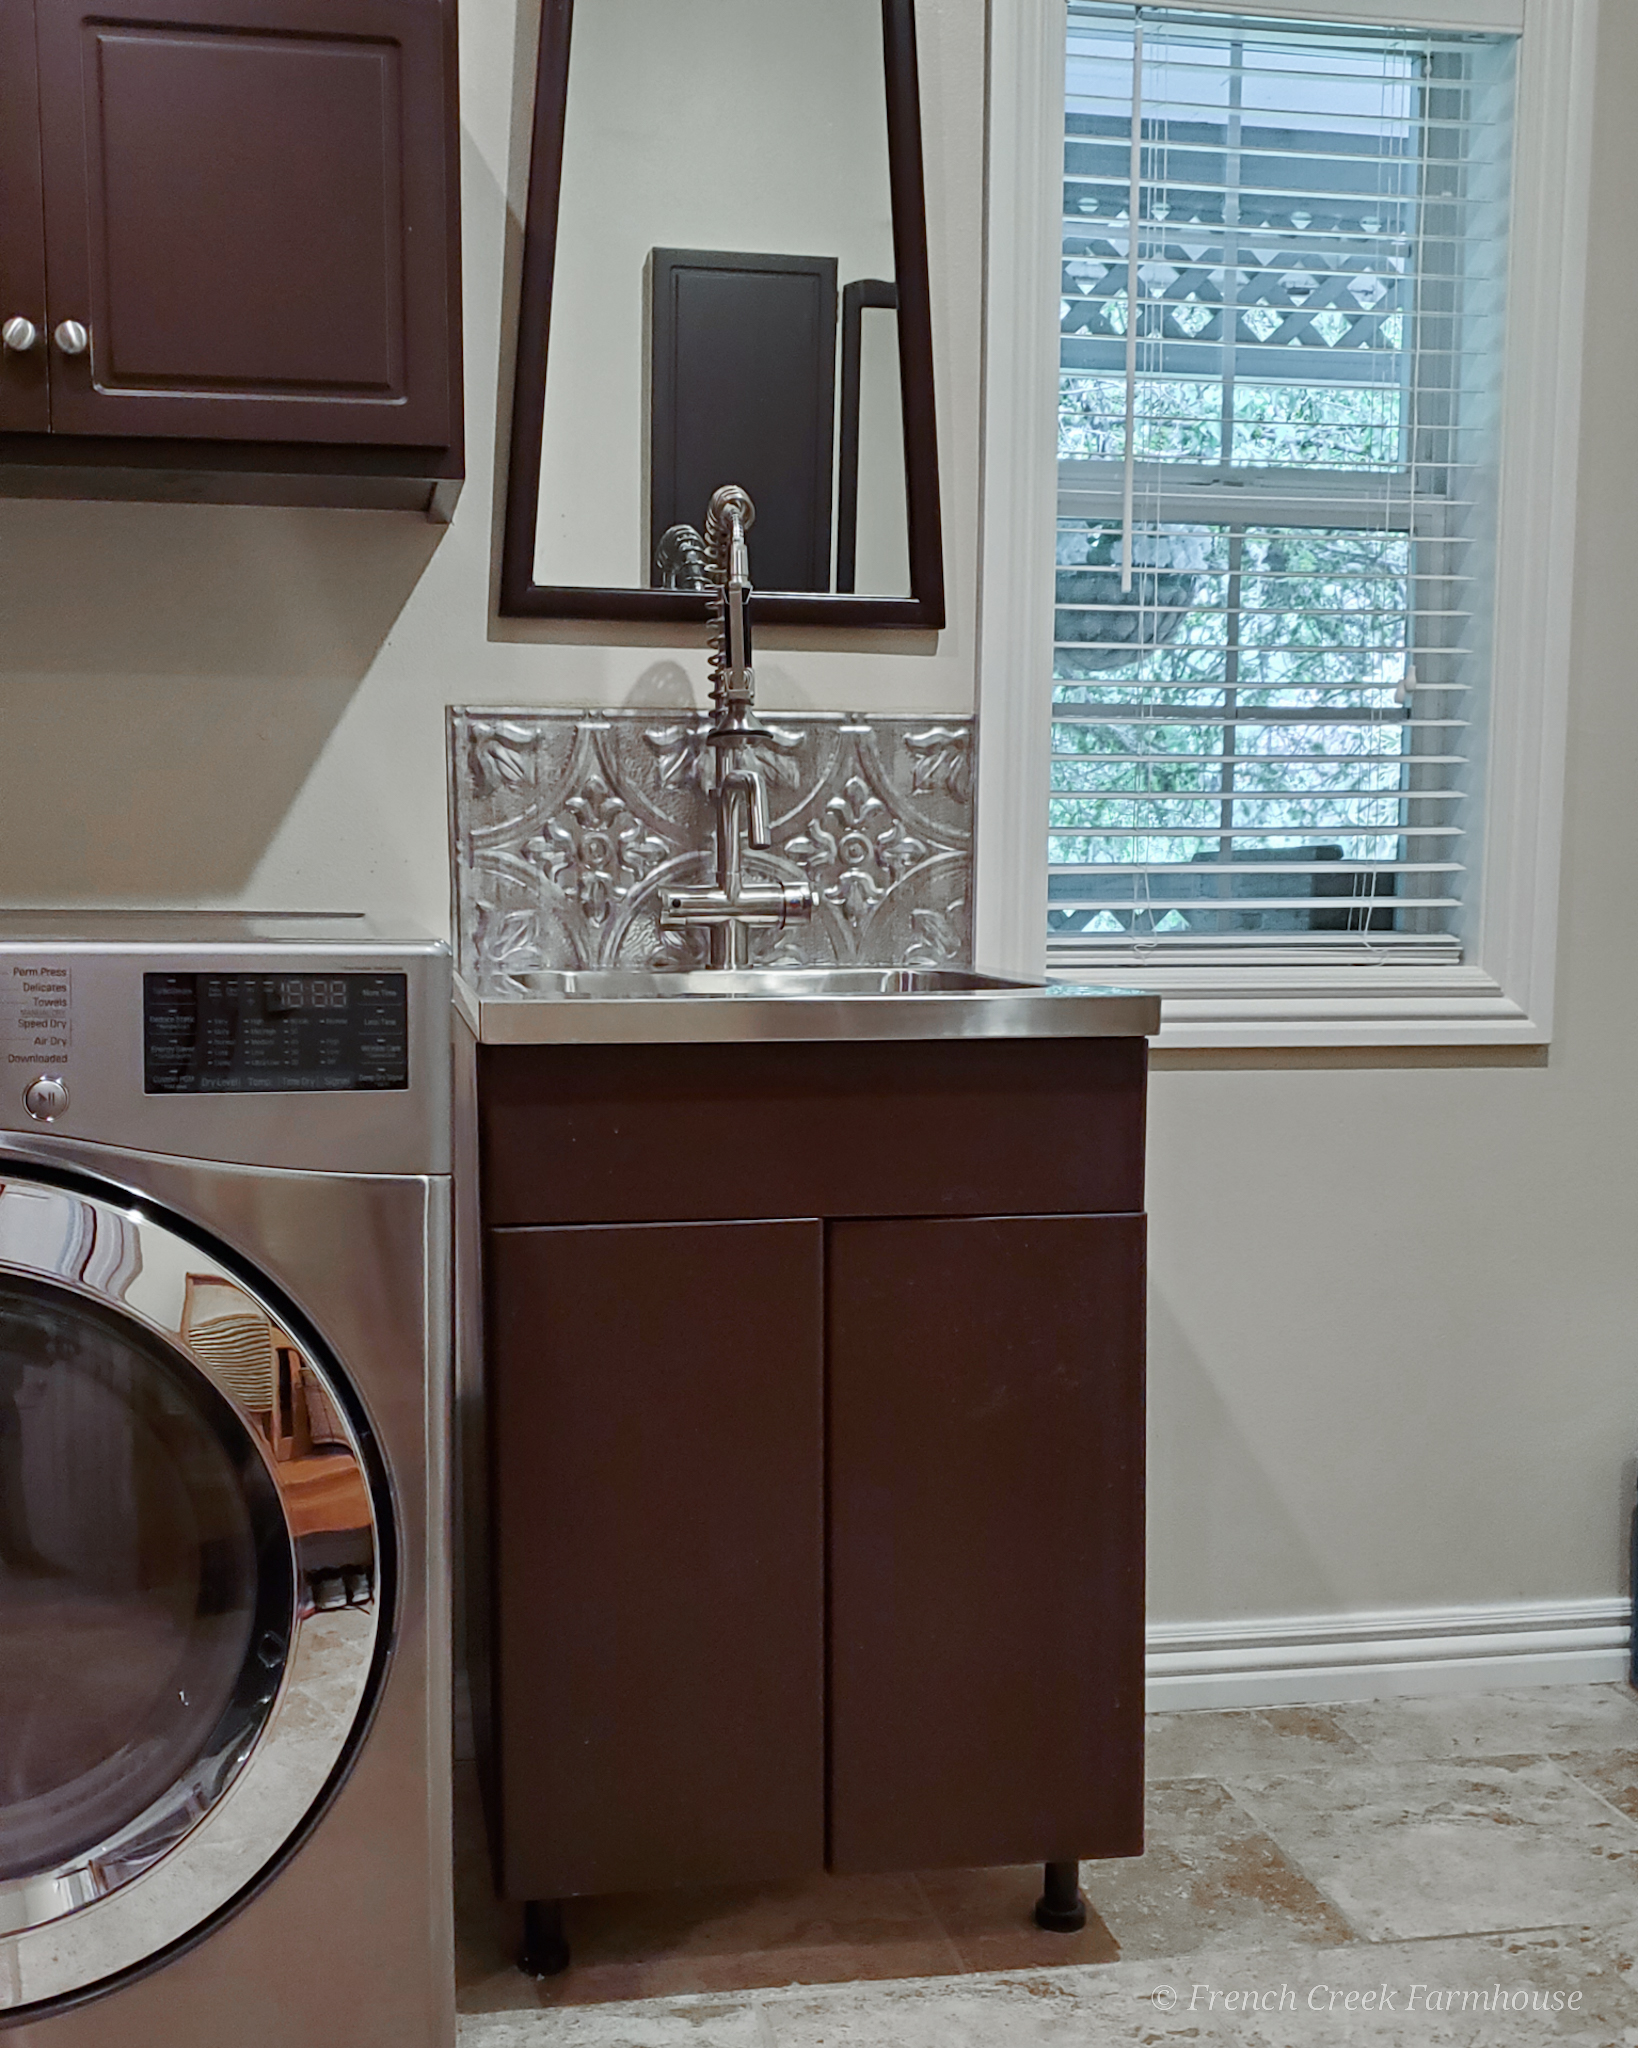 Before: Our utility sink cabinet in dark brown paint